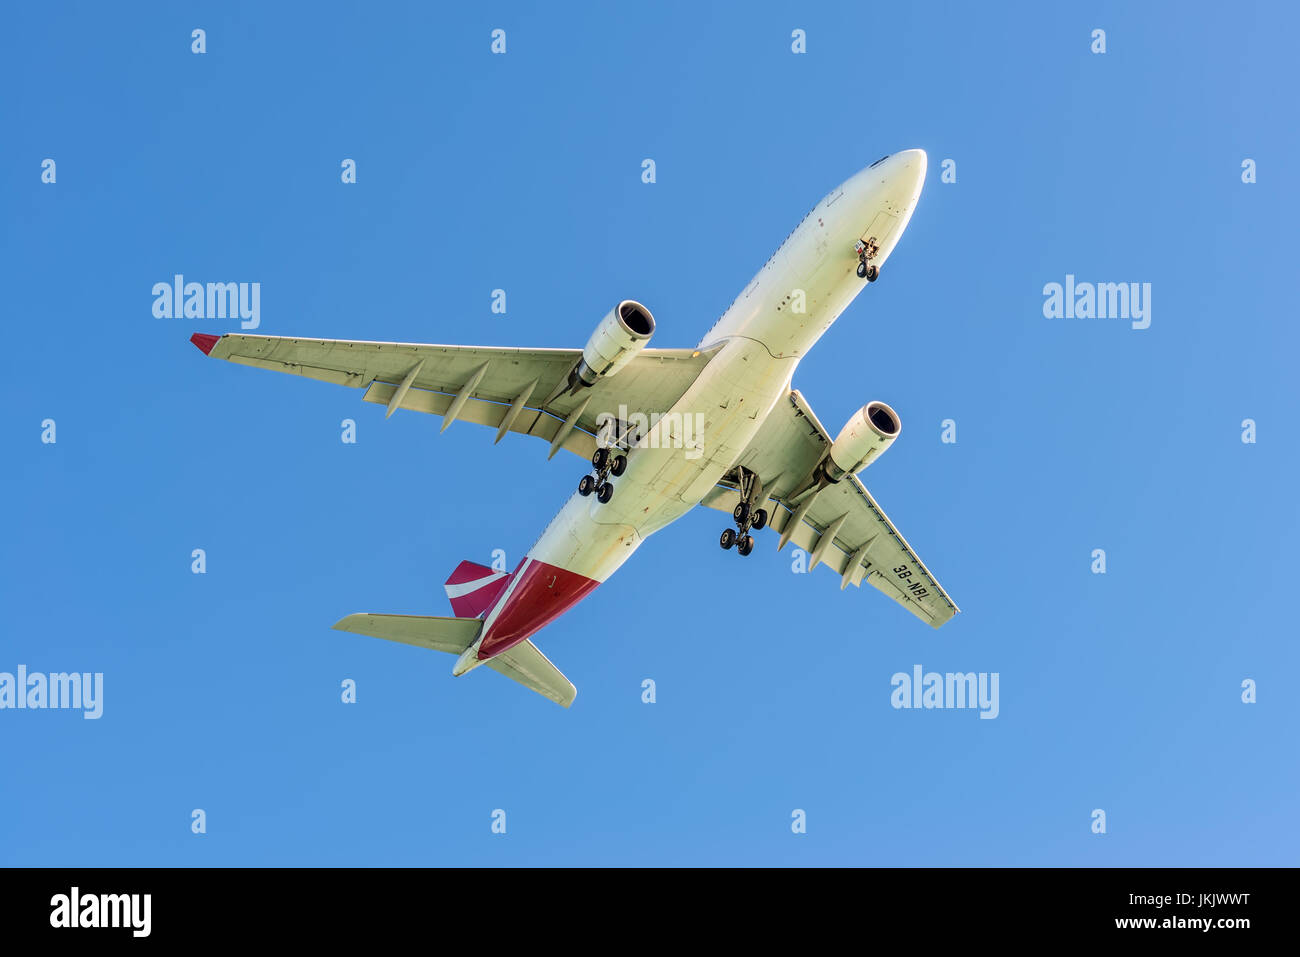 Plaisance, Mauritius - December 27, 2015: The aircraft Air Mauritius Airbus A330-202 taking off from the Sir Seewoosagur - Stock Image